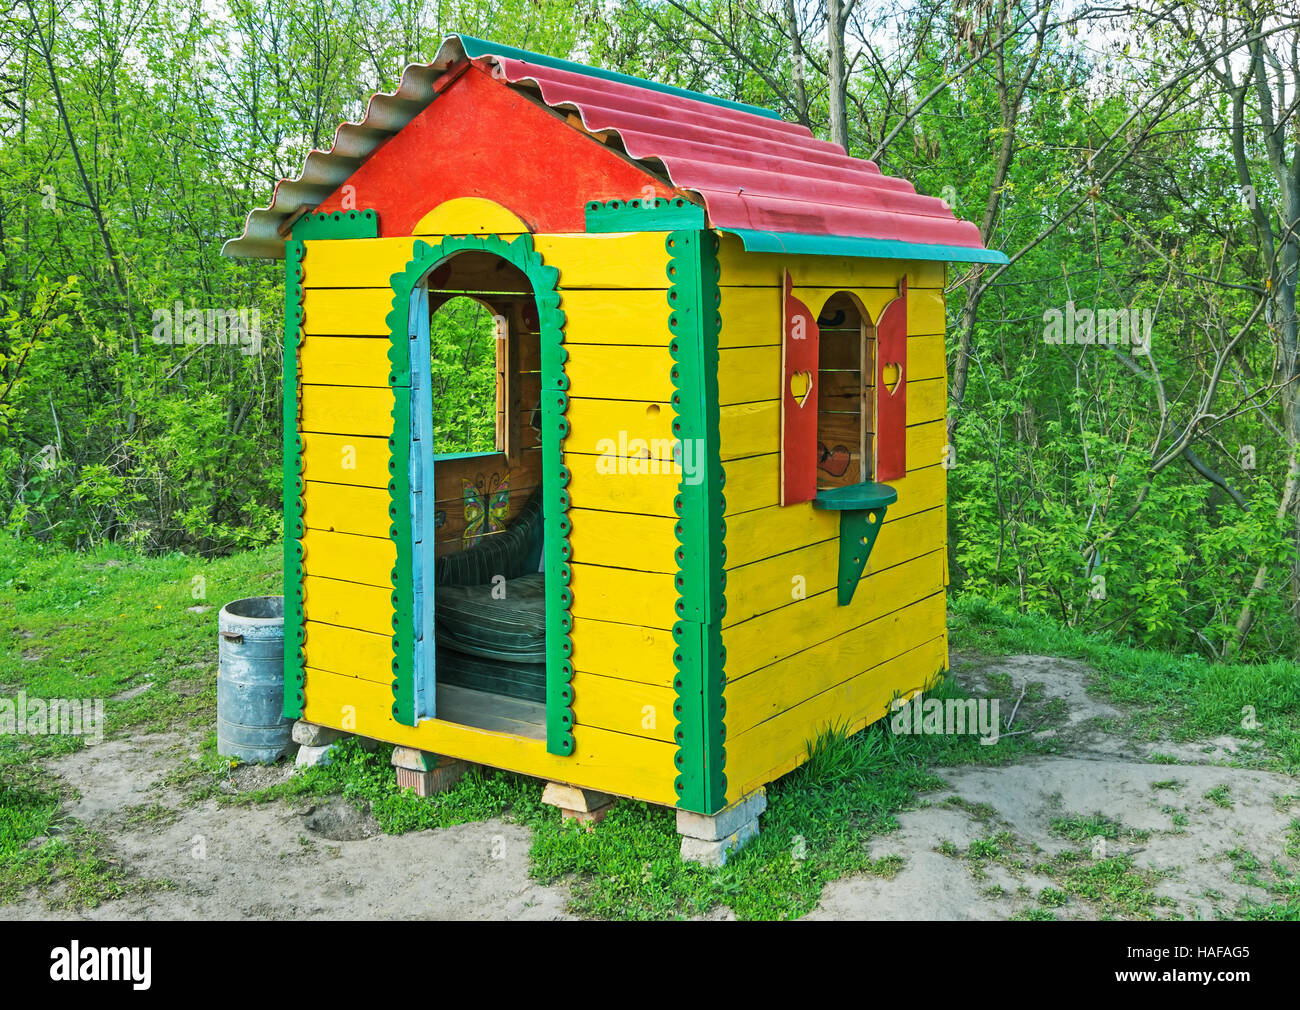 A small children's playhouse on the lawn in the city park in early spring - Stock Image